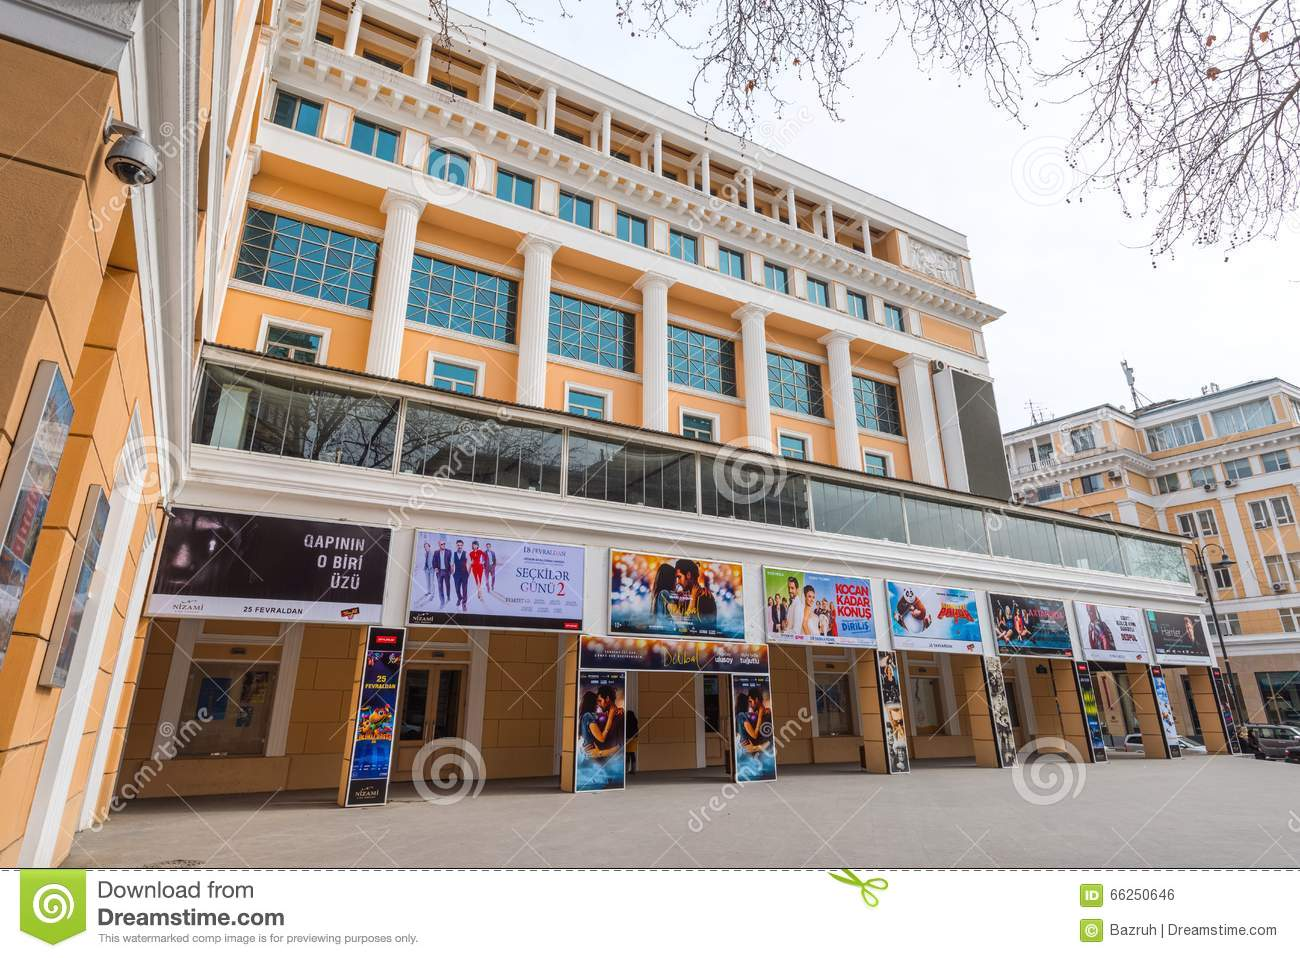 3 291 Old Cinema Building Photos Free Royalty Free Stock Photos From Dreamstime